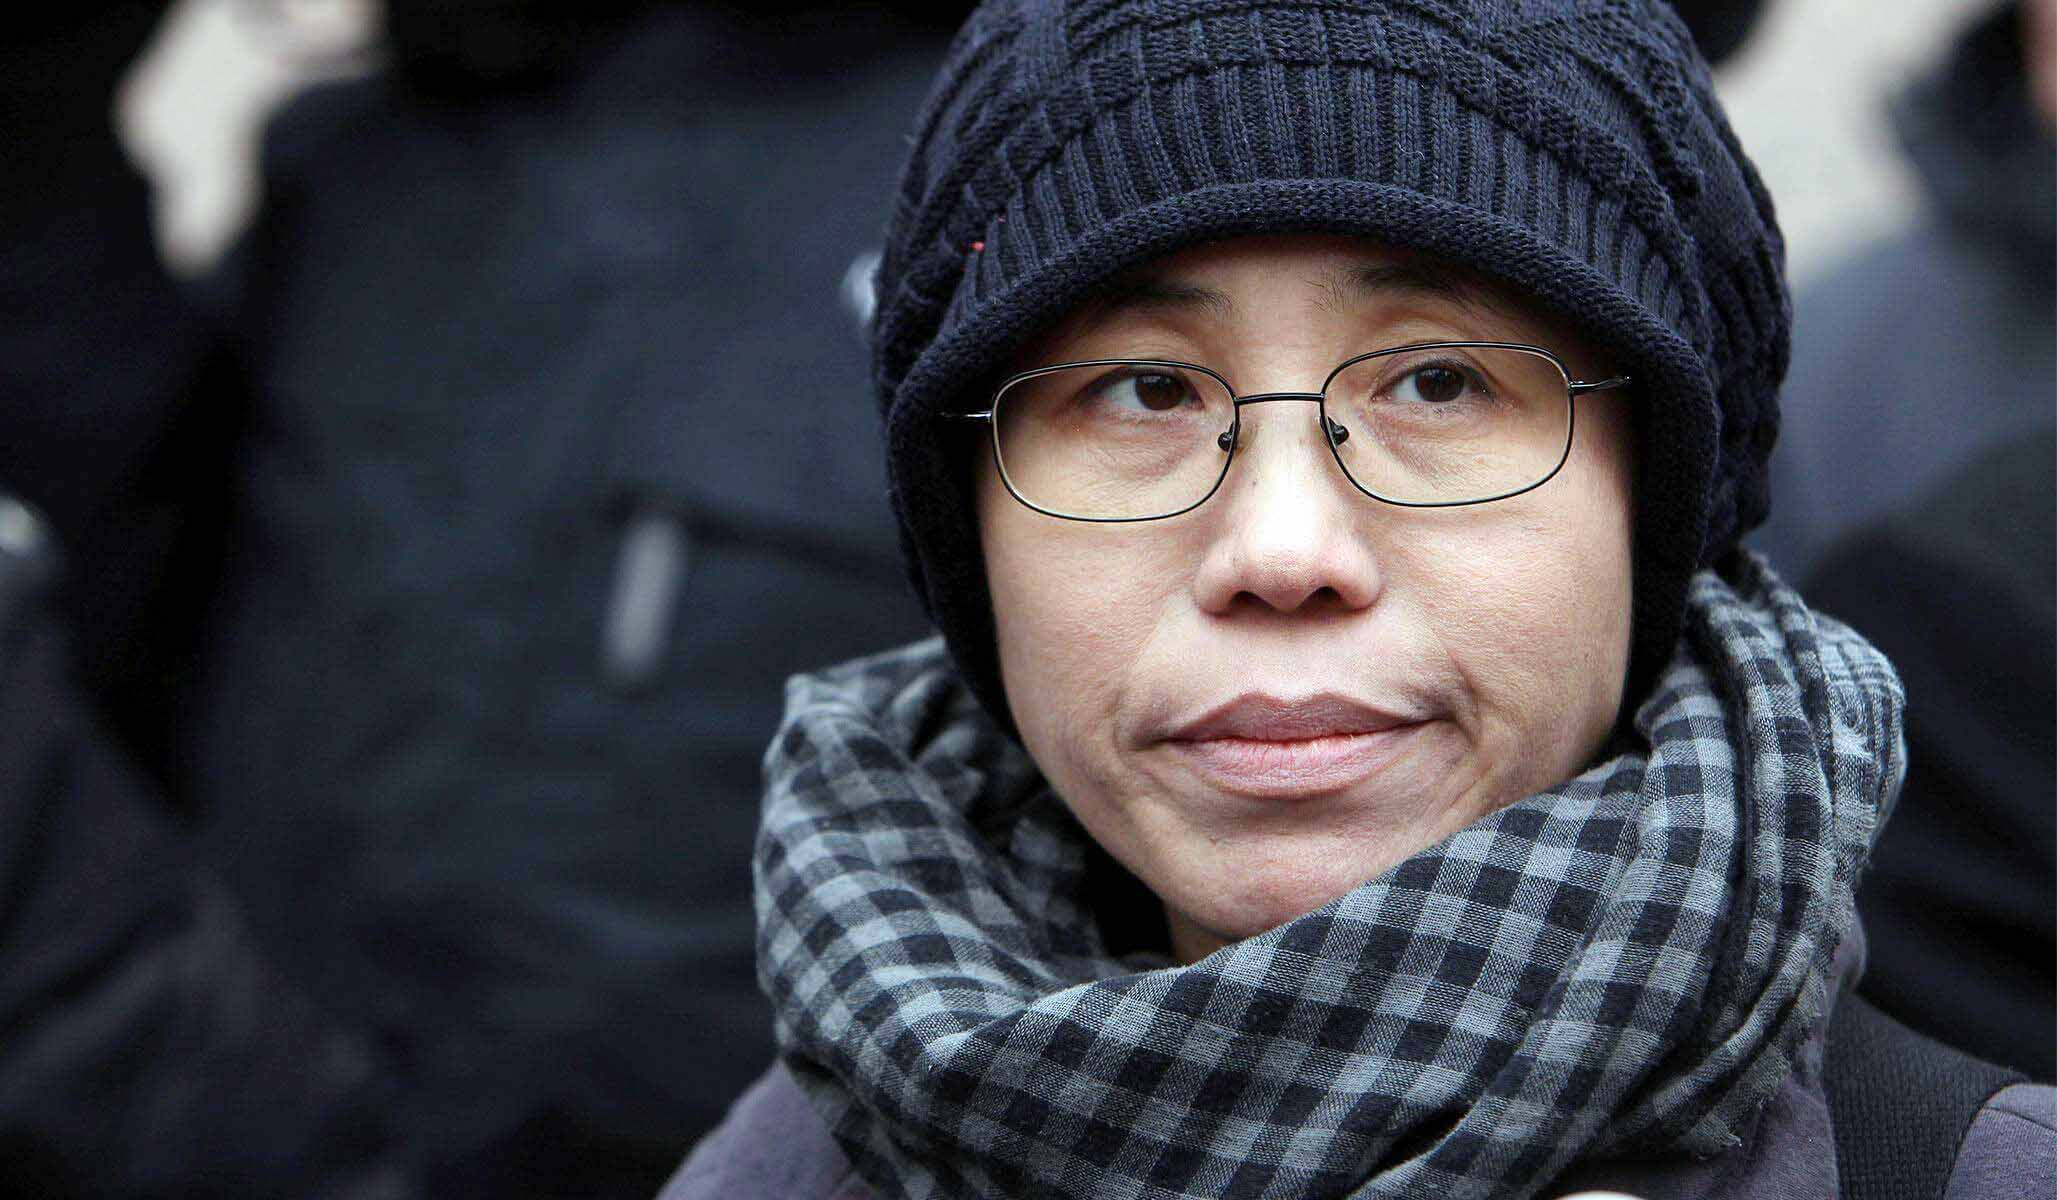 Liu Xia, widow of late Nobel peace laureate and political prisoner Liu Xiaobo. (Photo courtesy: voiceproject.org)